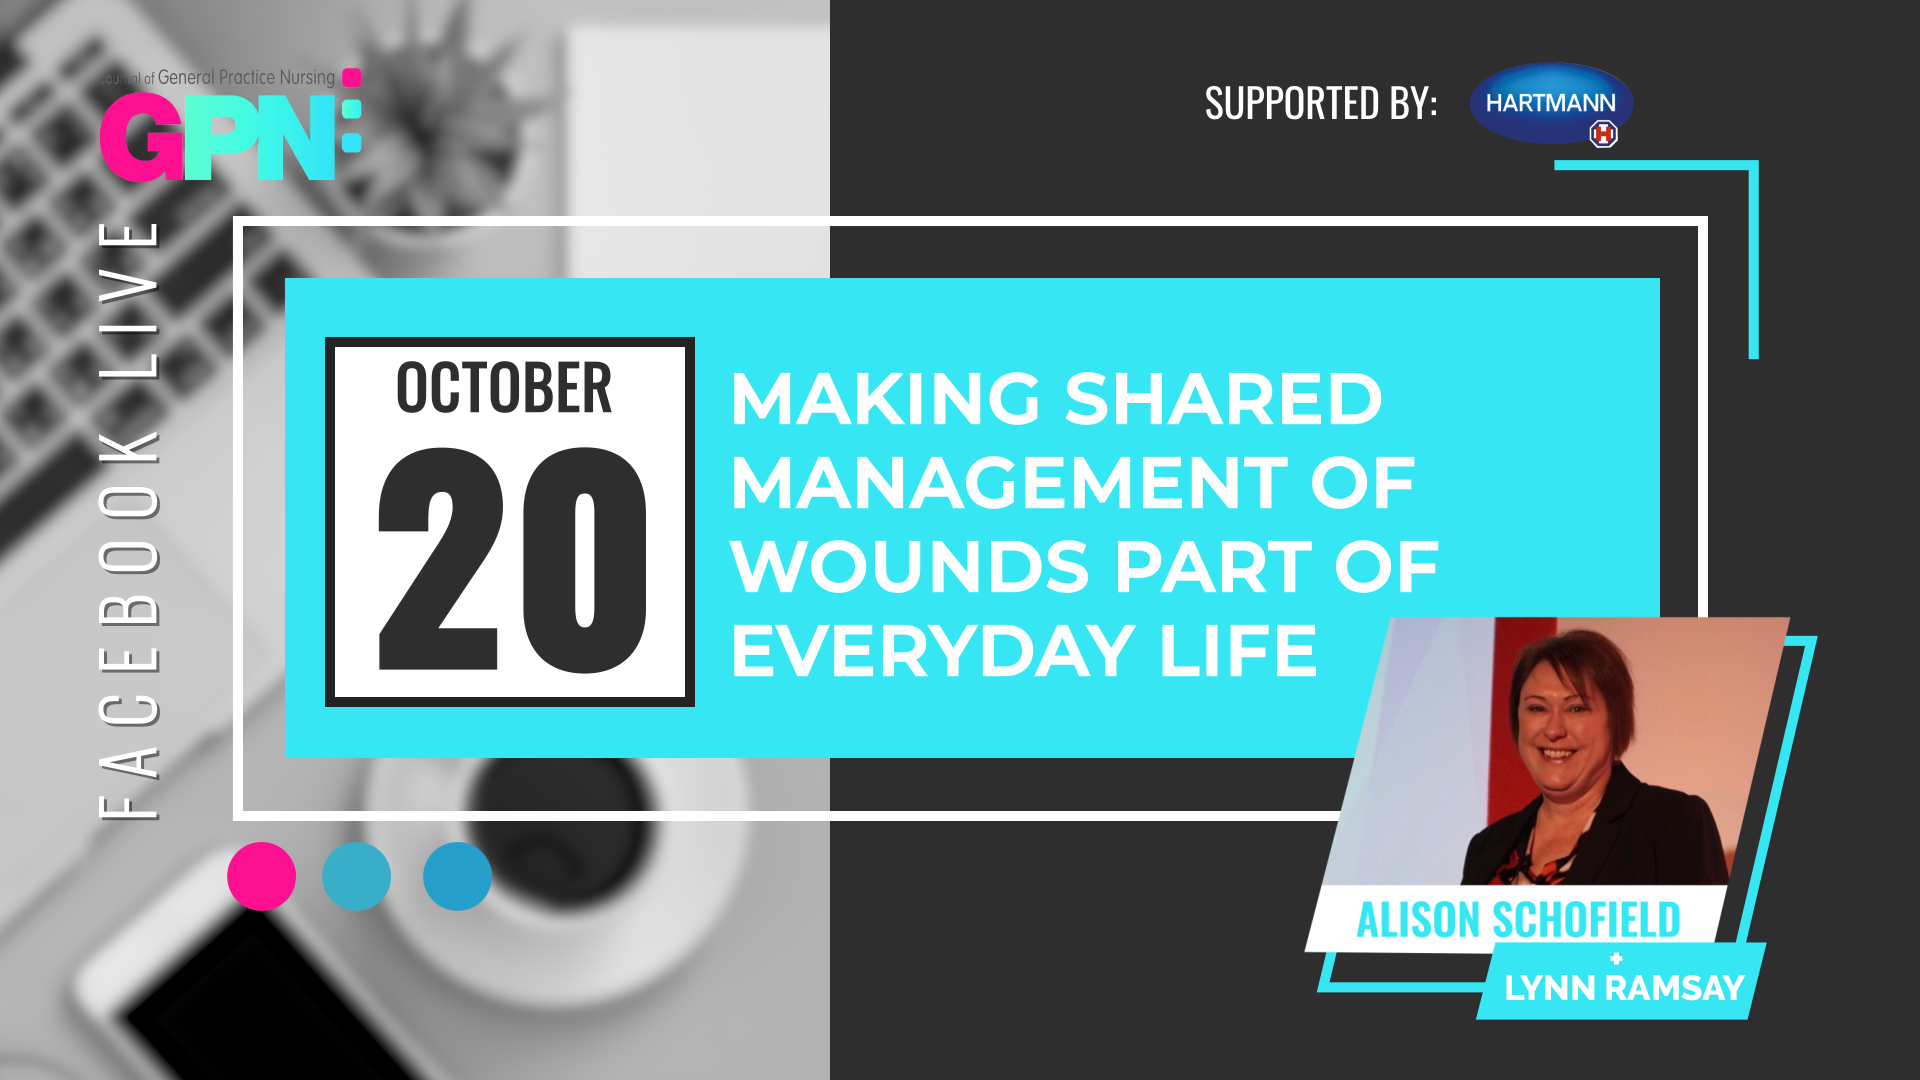 Facebook Live: Making shared management of wounds part of everyday life